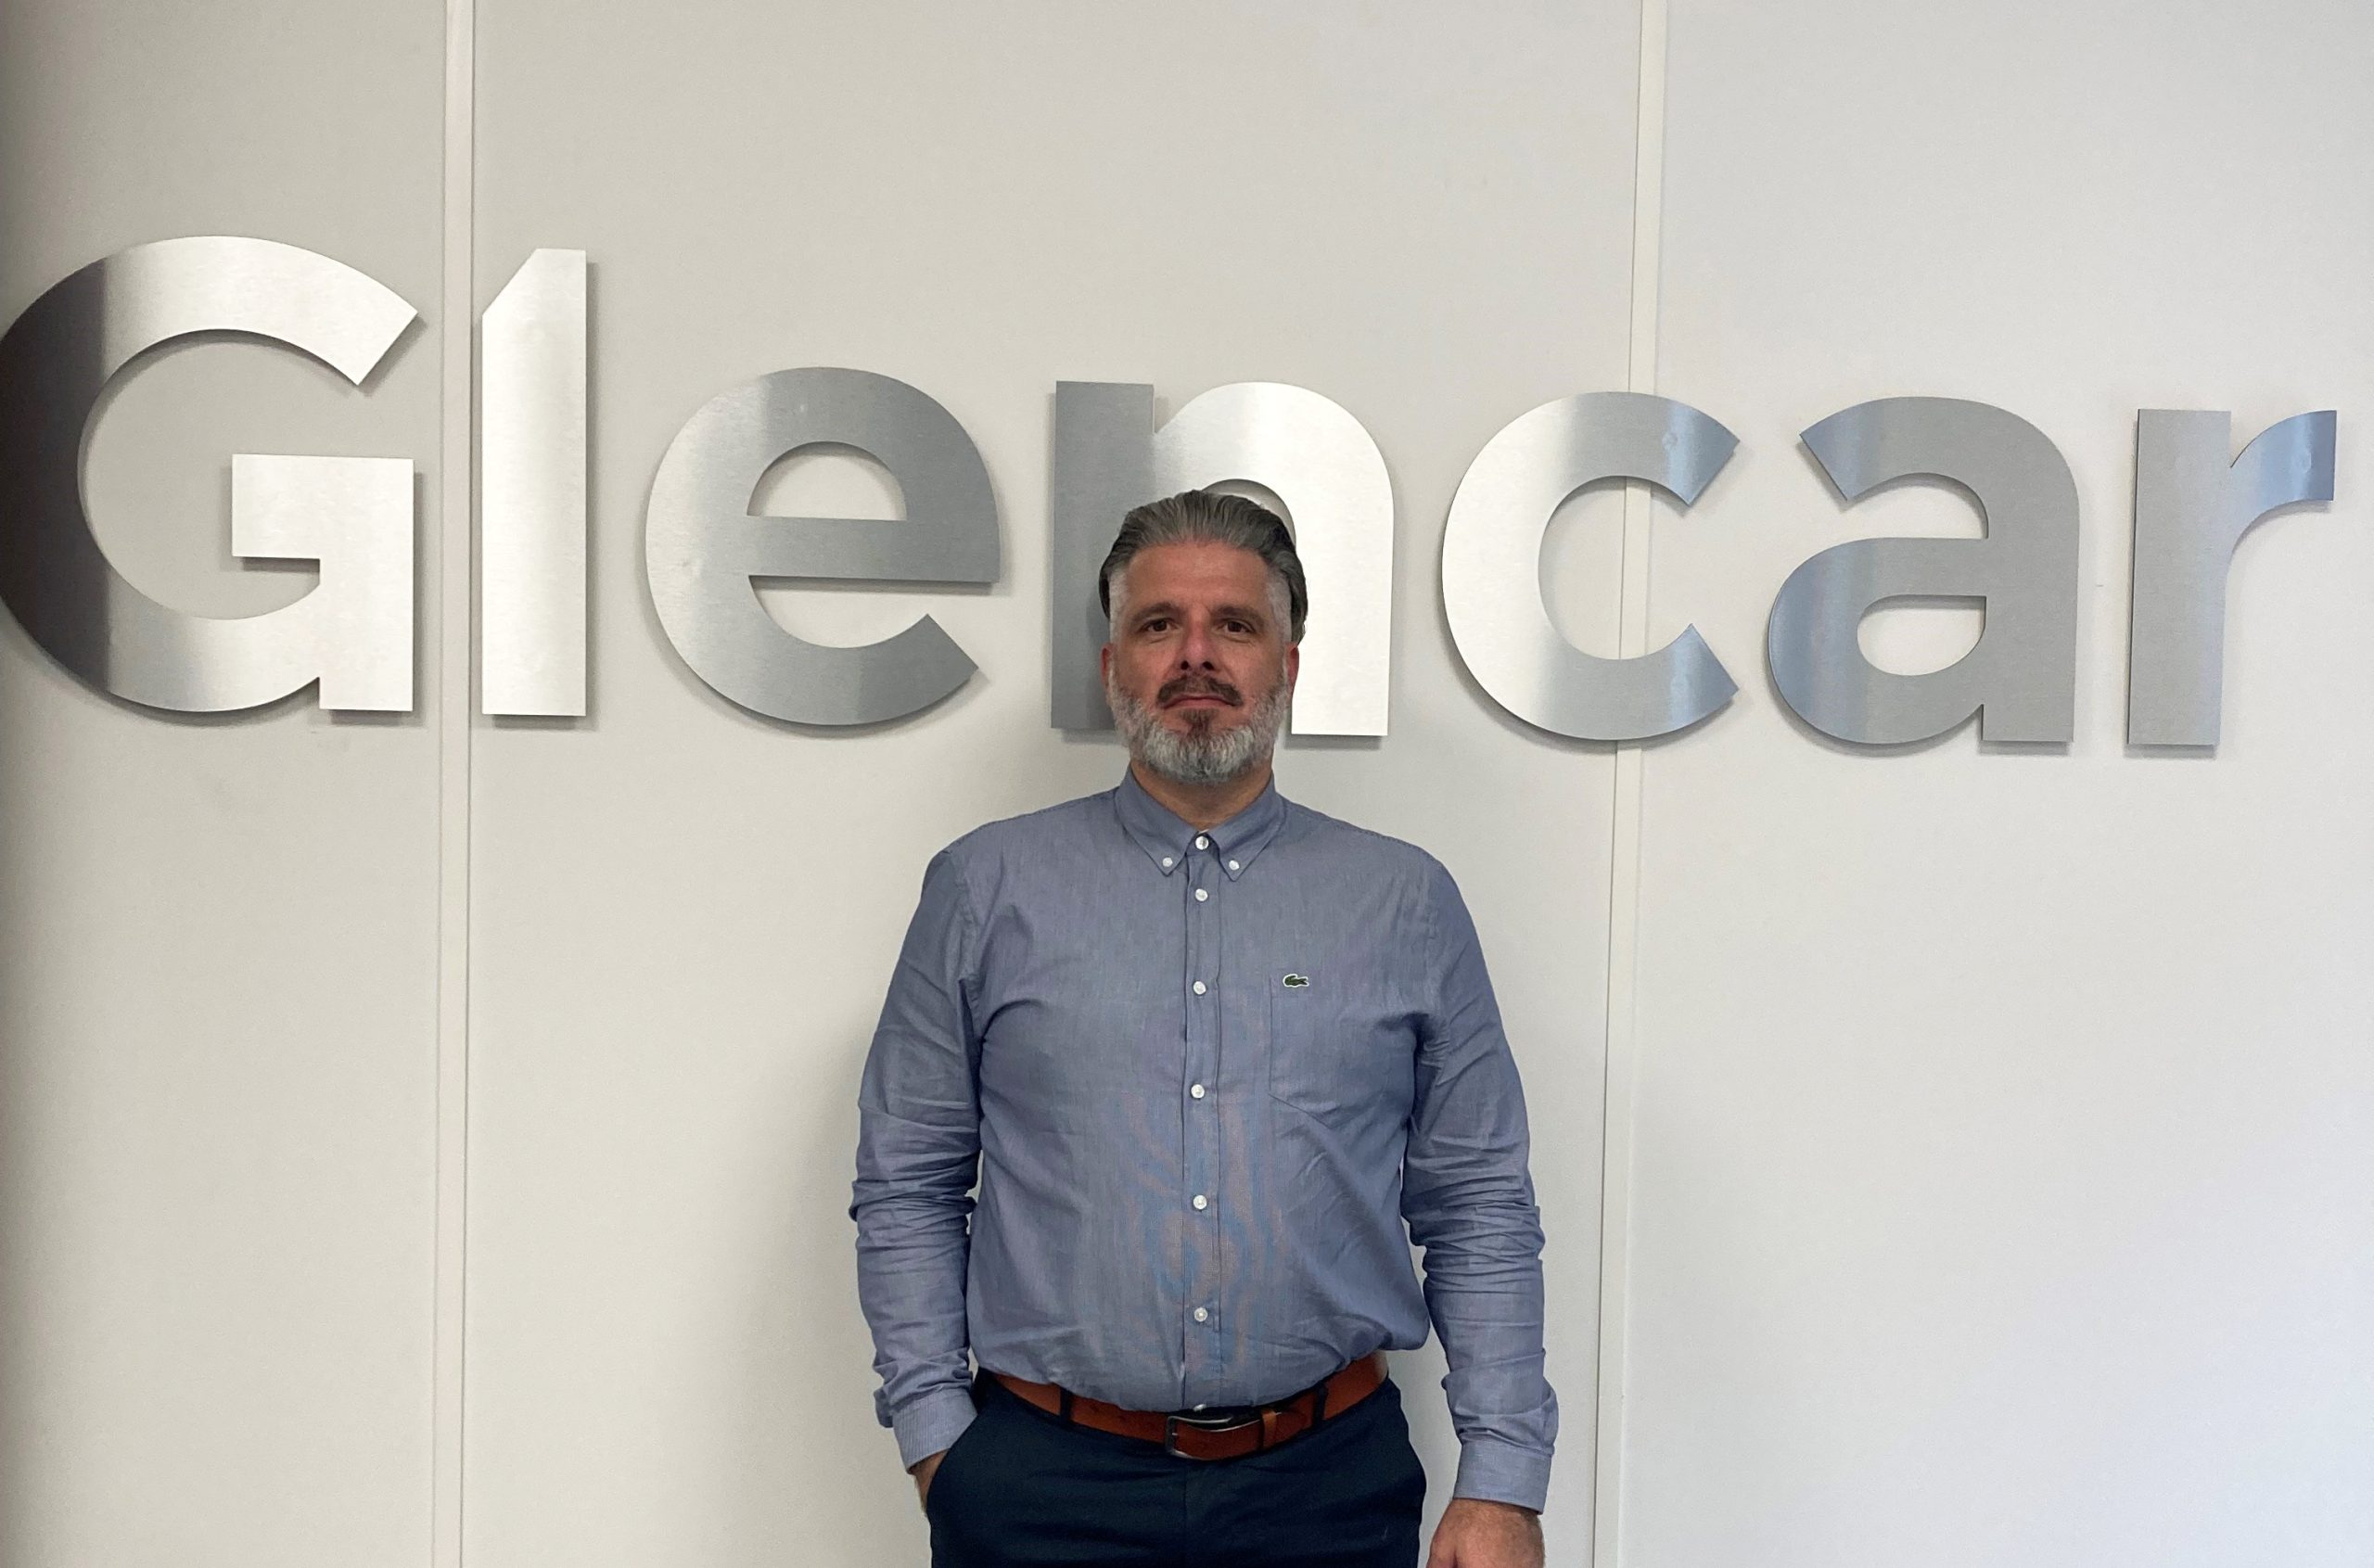 Glencar announces the appointment of James Scott to the new position of Head of Sustainability